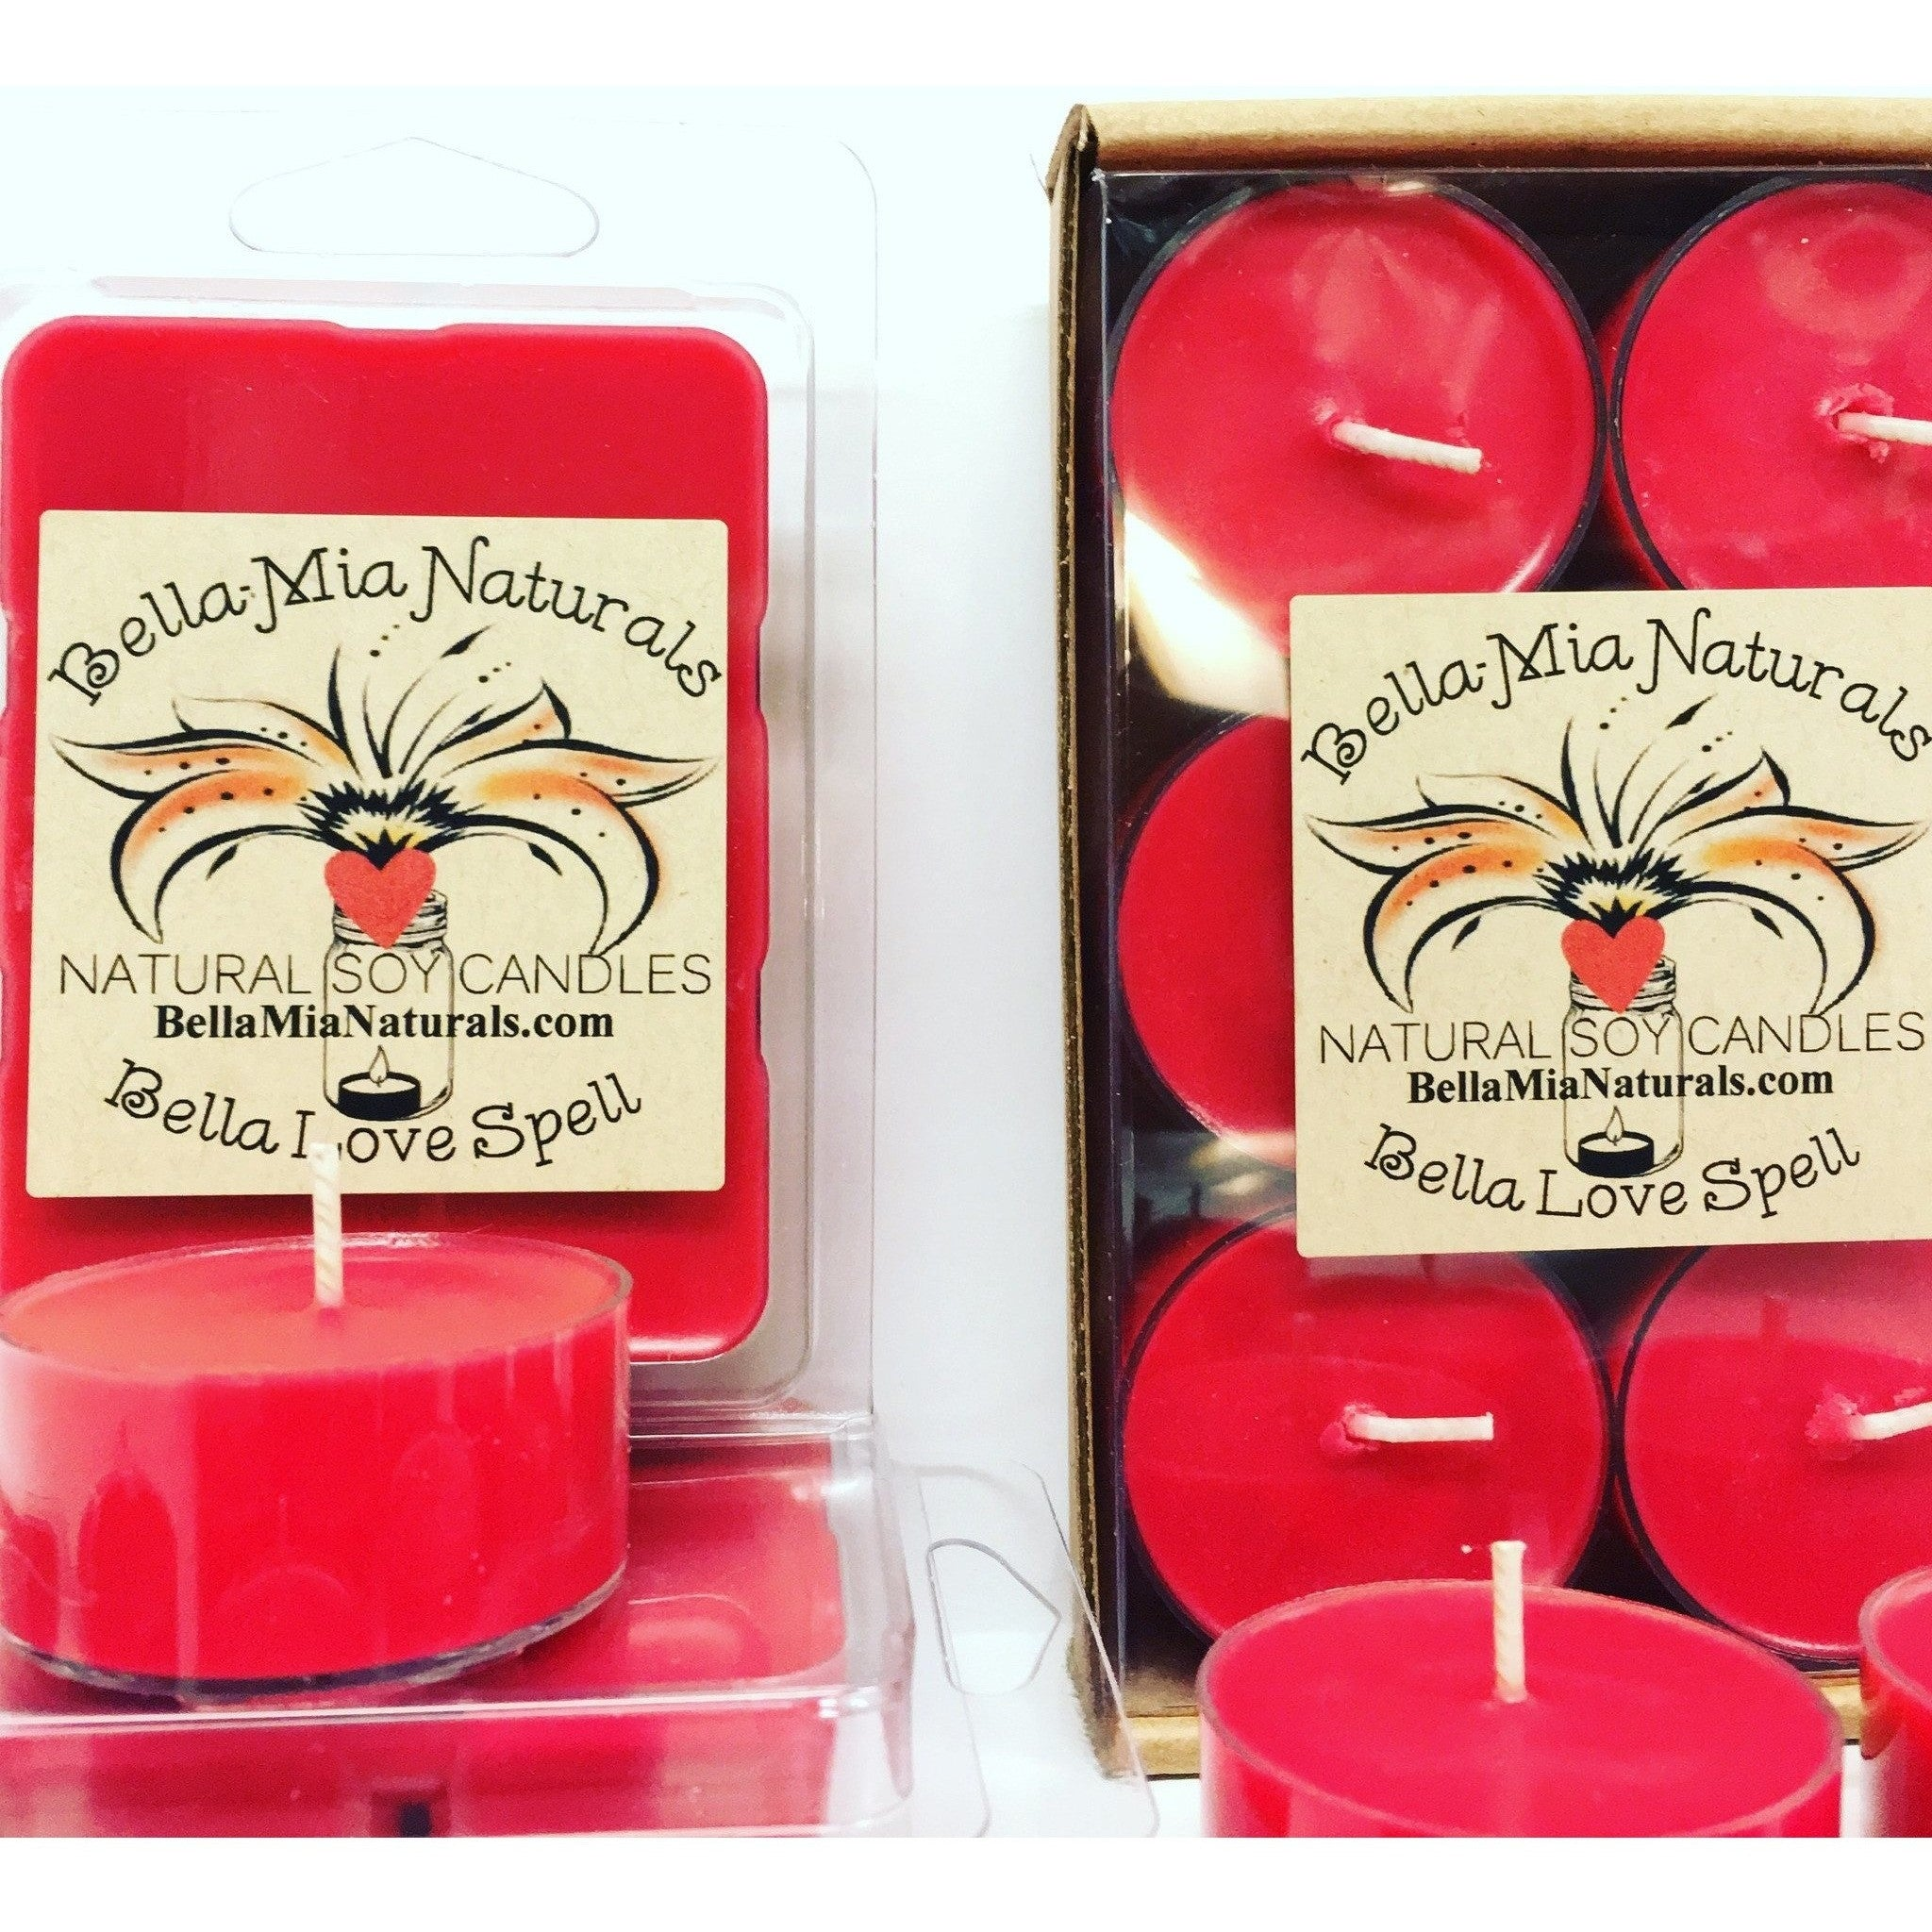 Bella Love Spell Natural Hand Poured Soy Candles & Melts -  - Bella-Mia Naturals All Natural Soy Candles & Lip Balms - 8